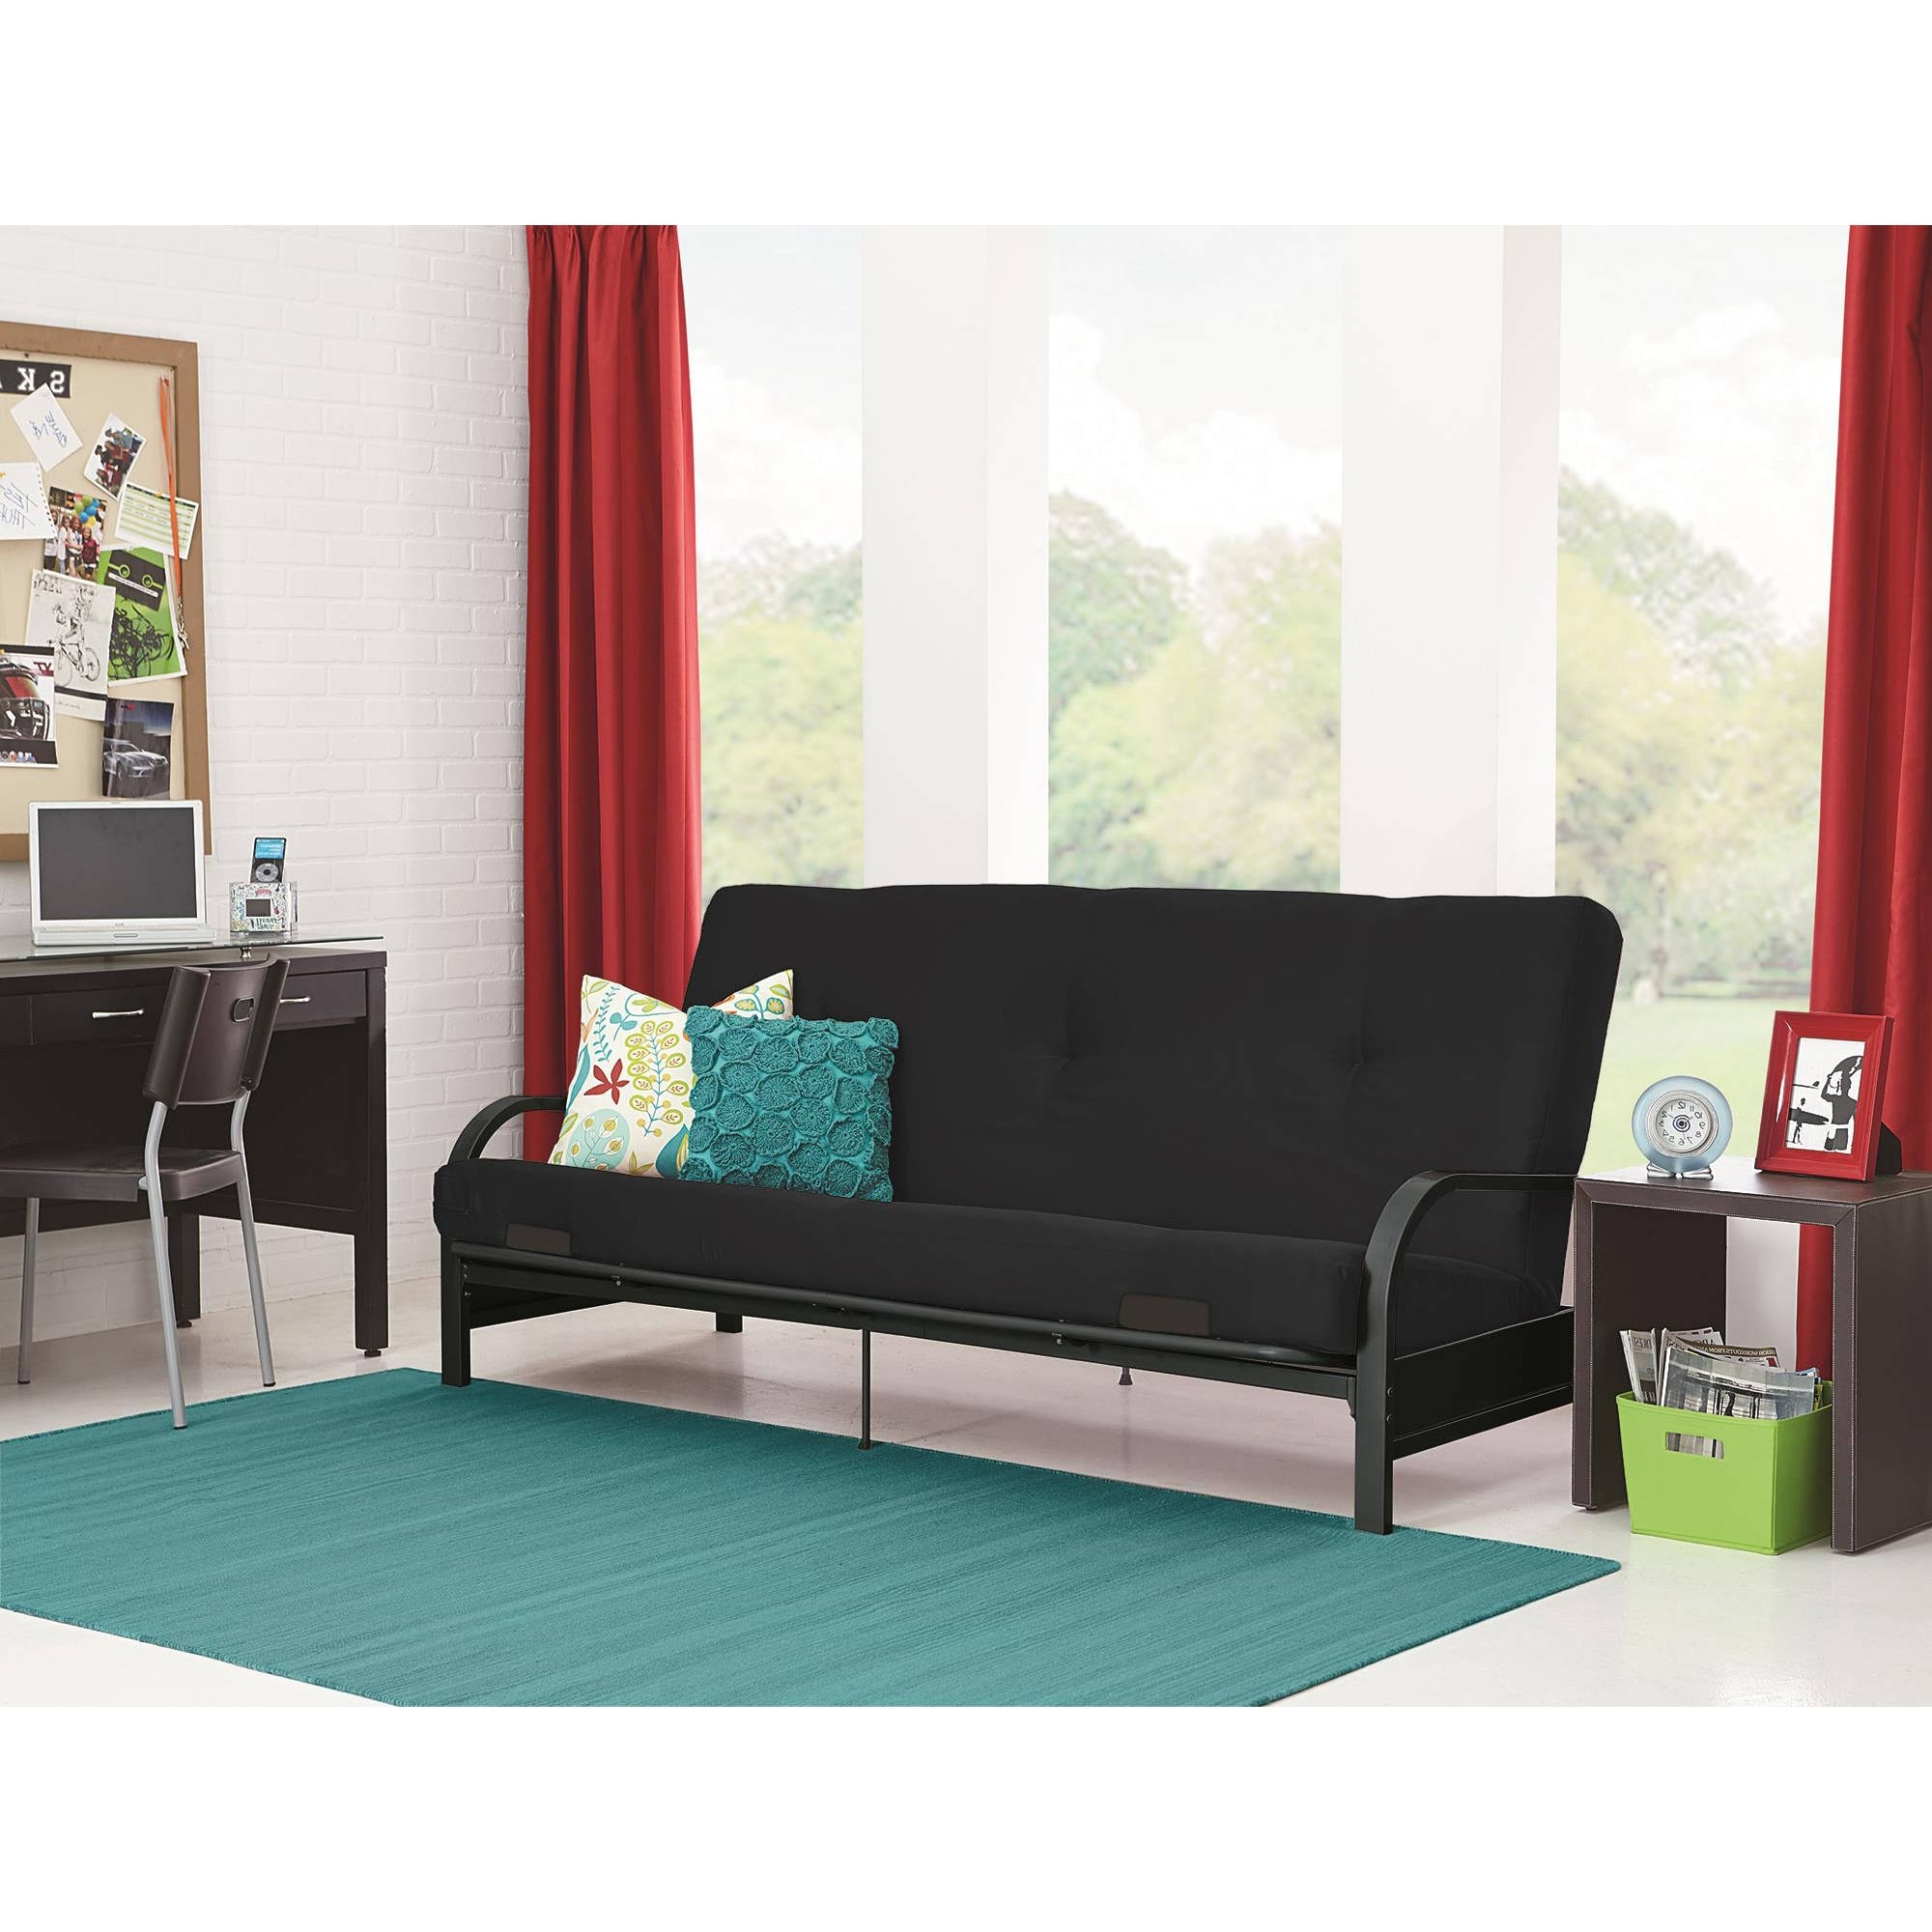 2018 Tallahassee Sectional Sofas In Futons – Walmart (View 15 of 15)